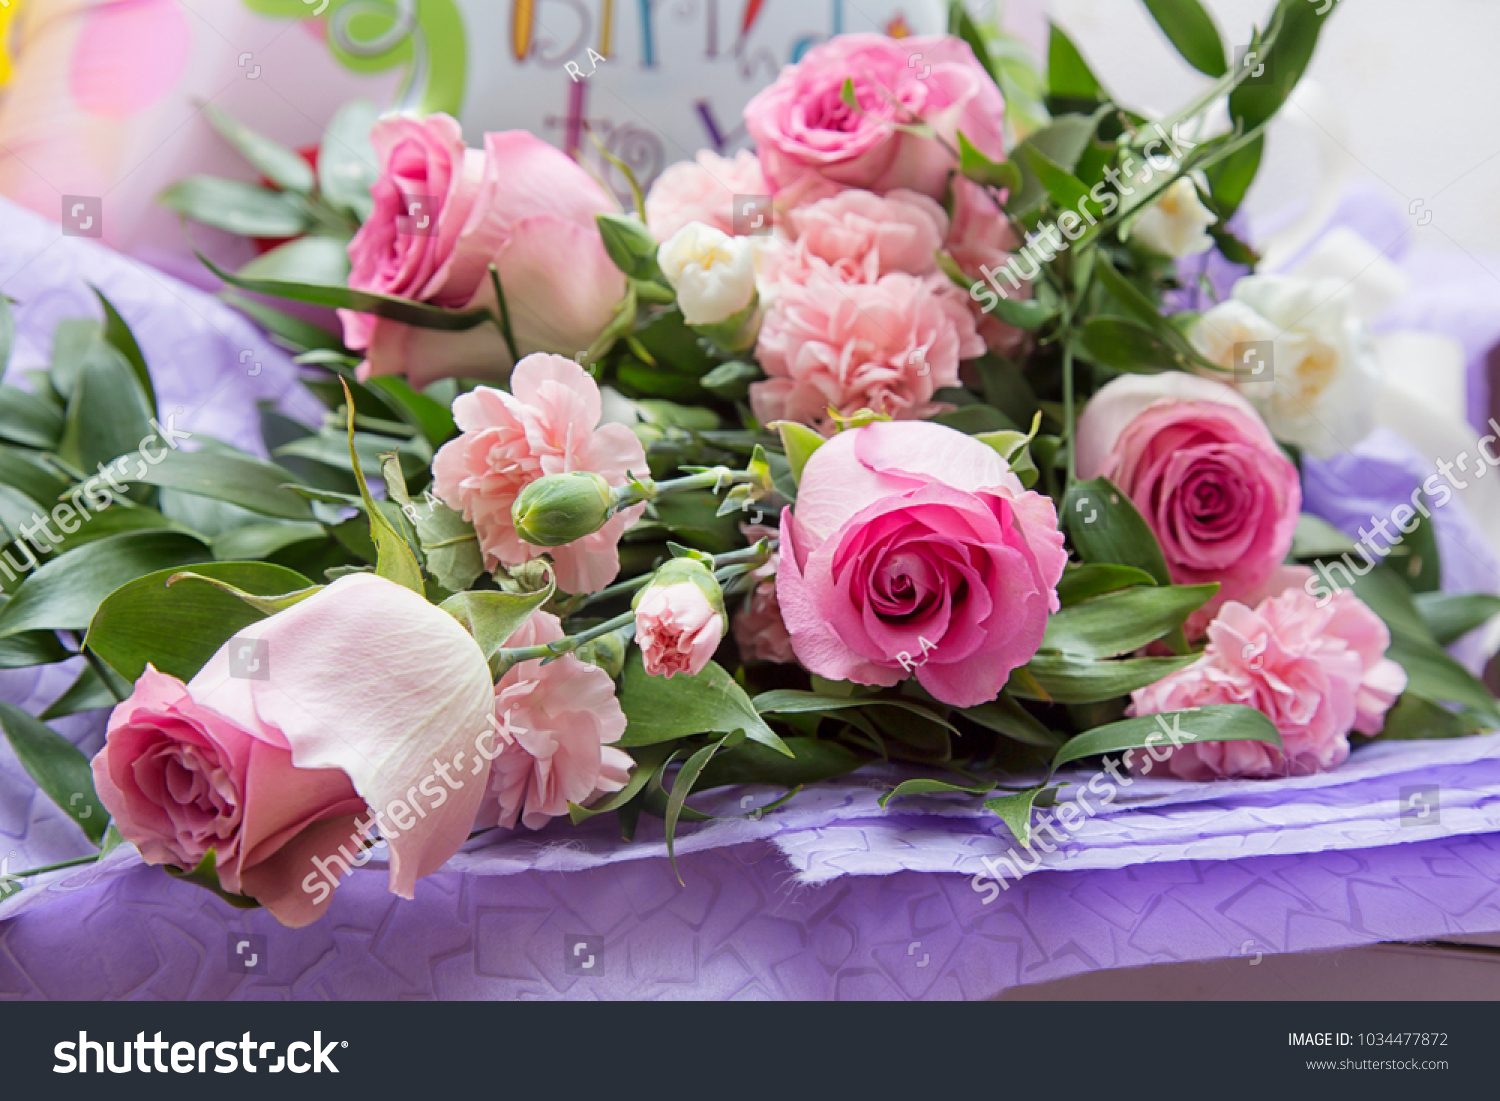 A Bouquet Of Flowers From Roses And Balloons Is A Gift For A Happy